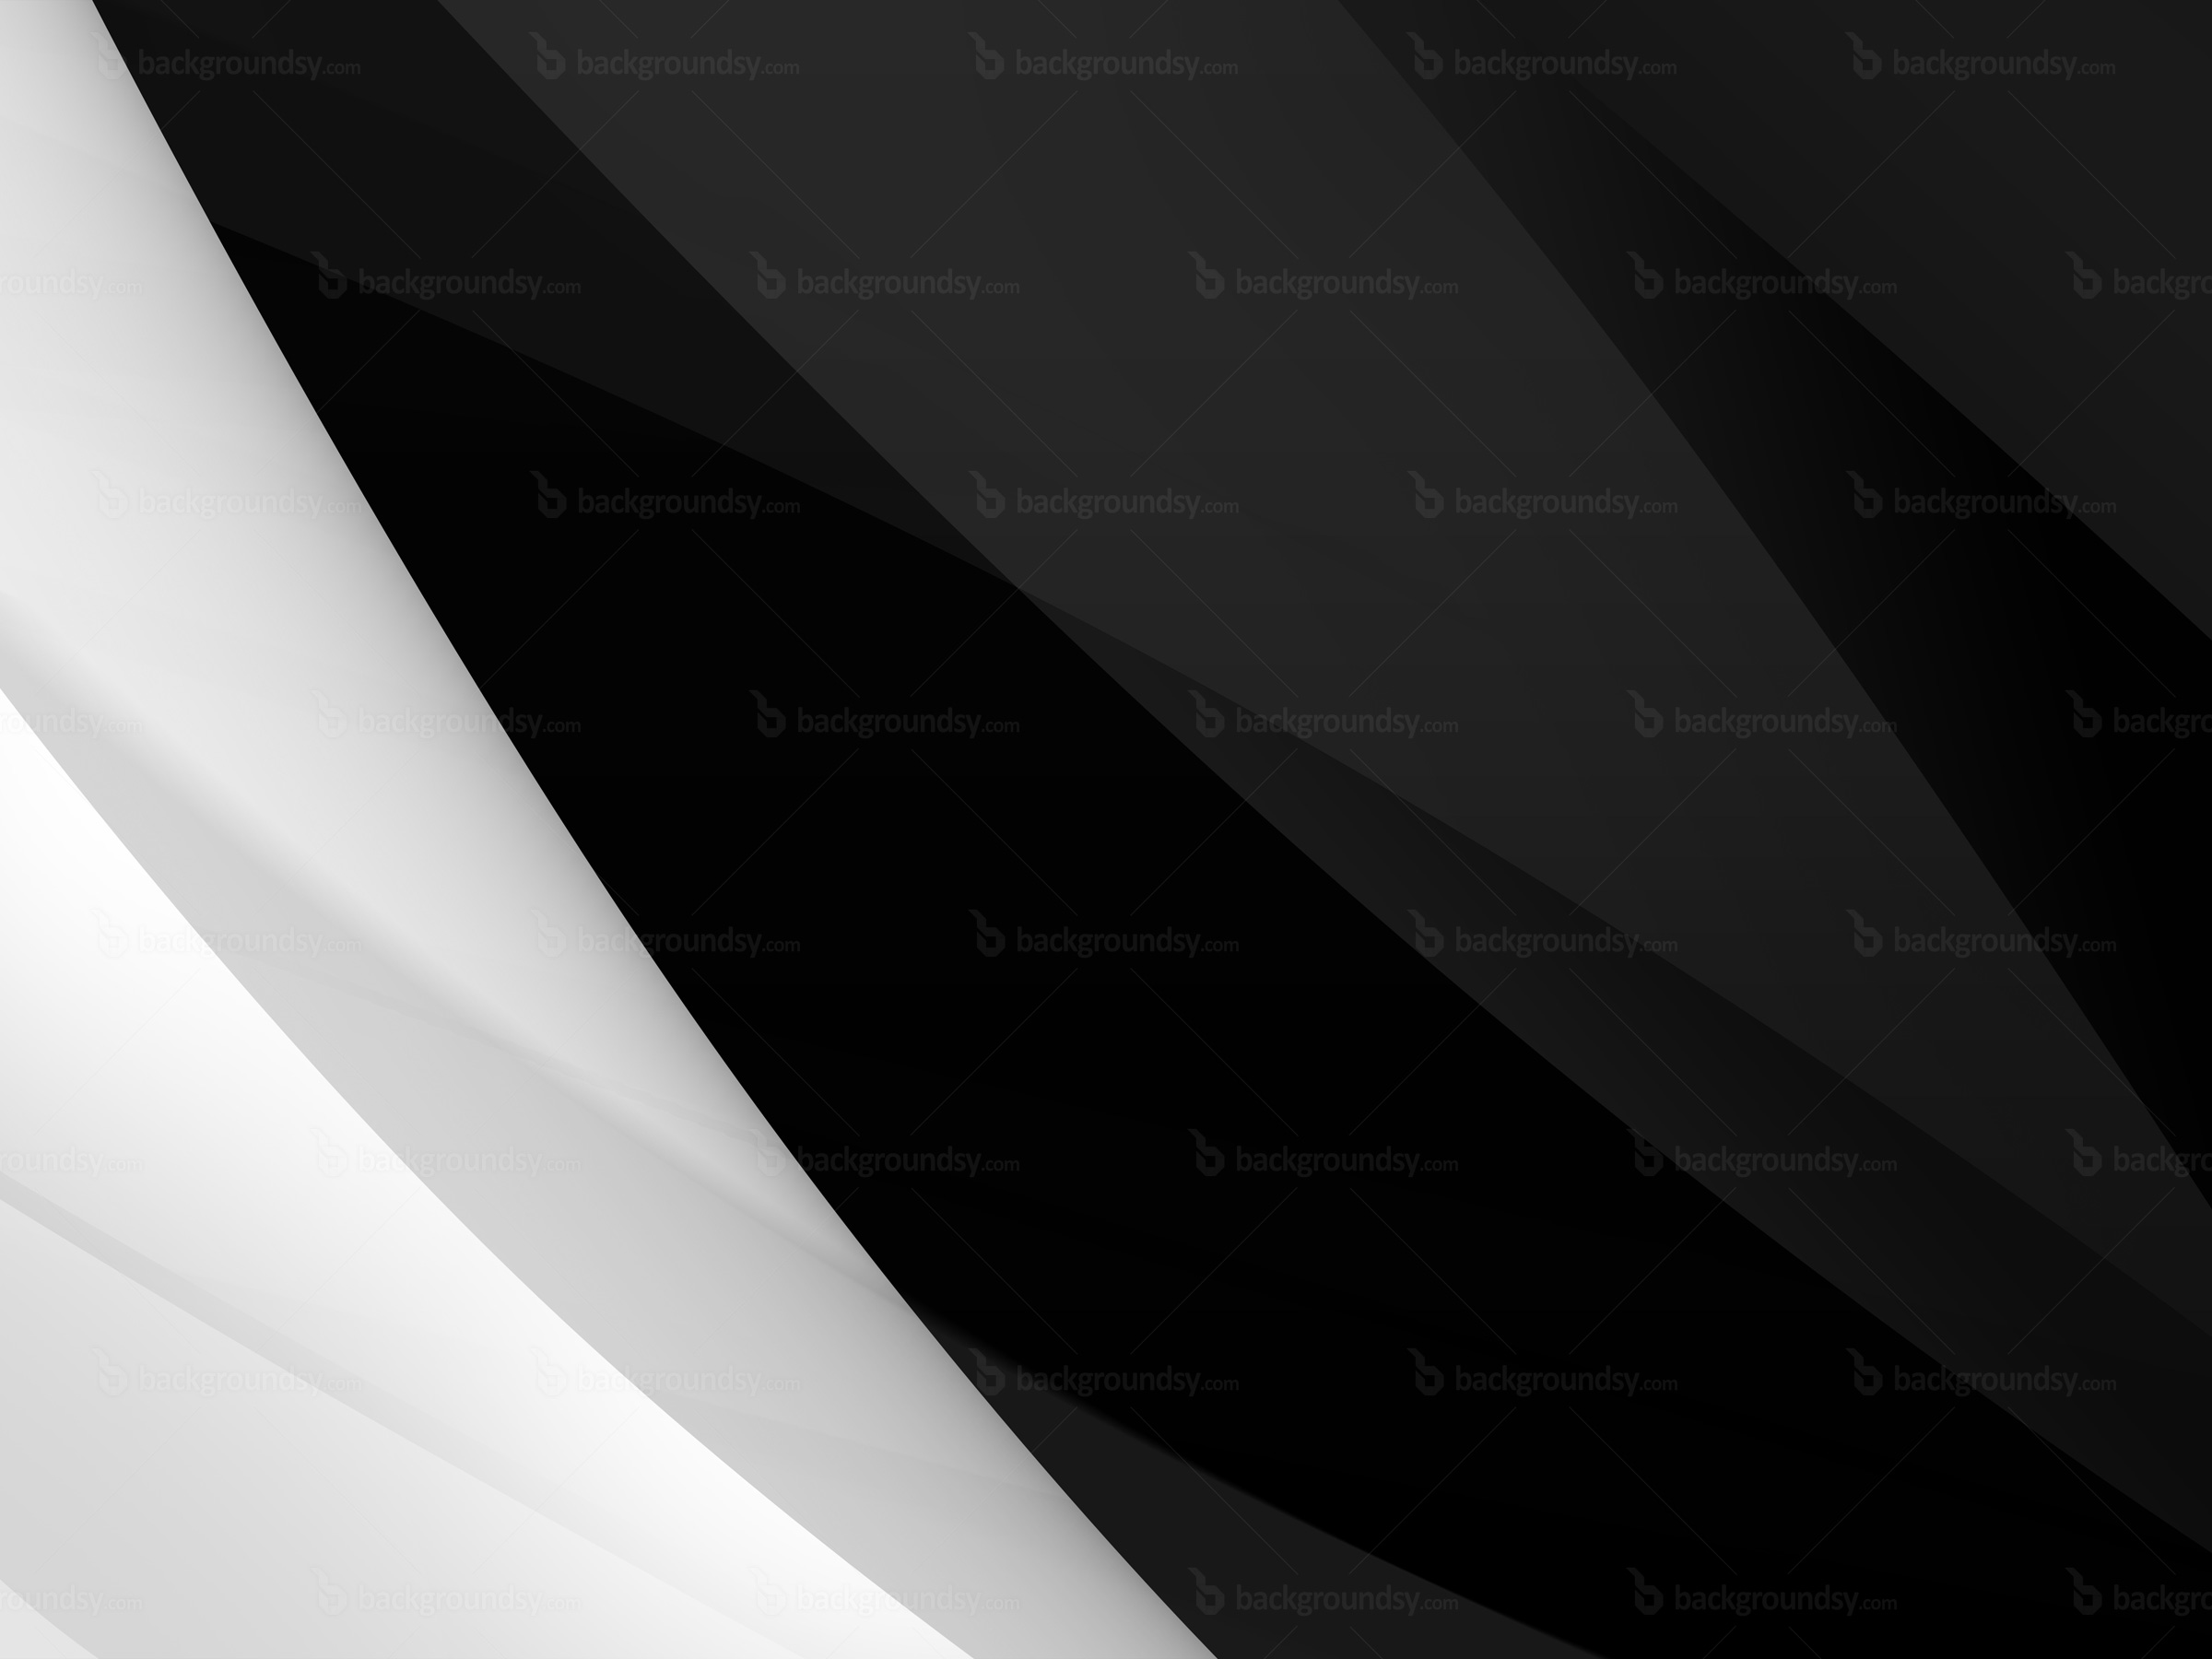 Black & white abstract background | Backgroundsy.com